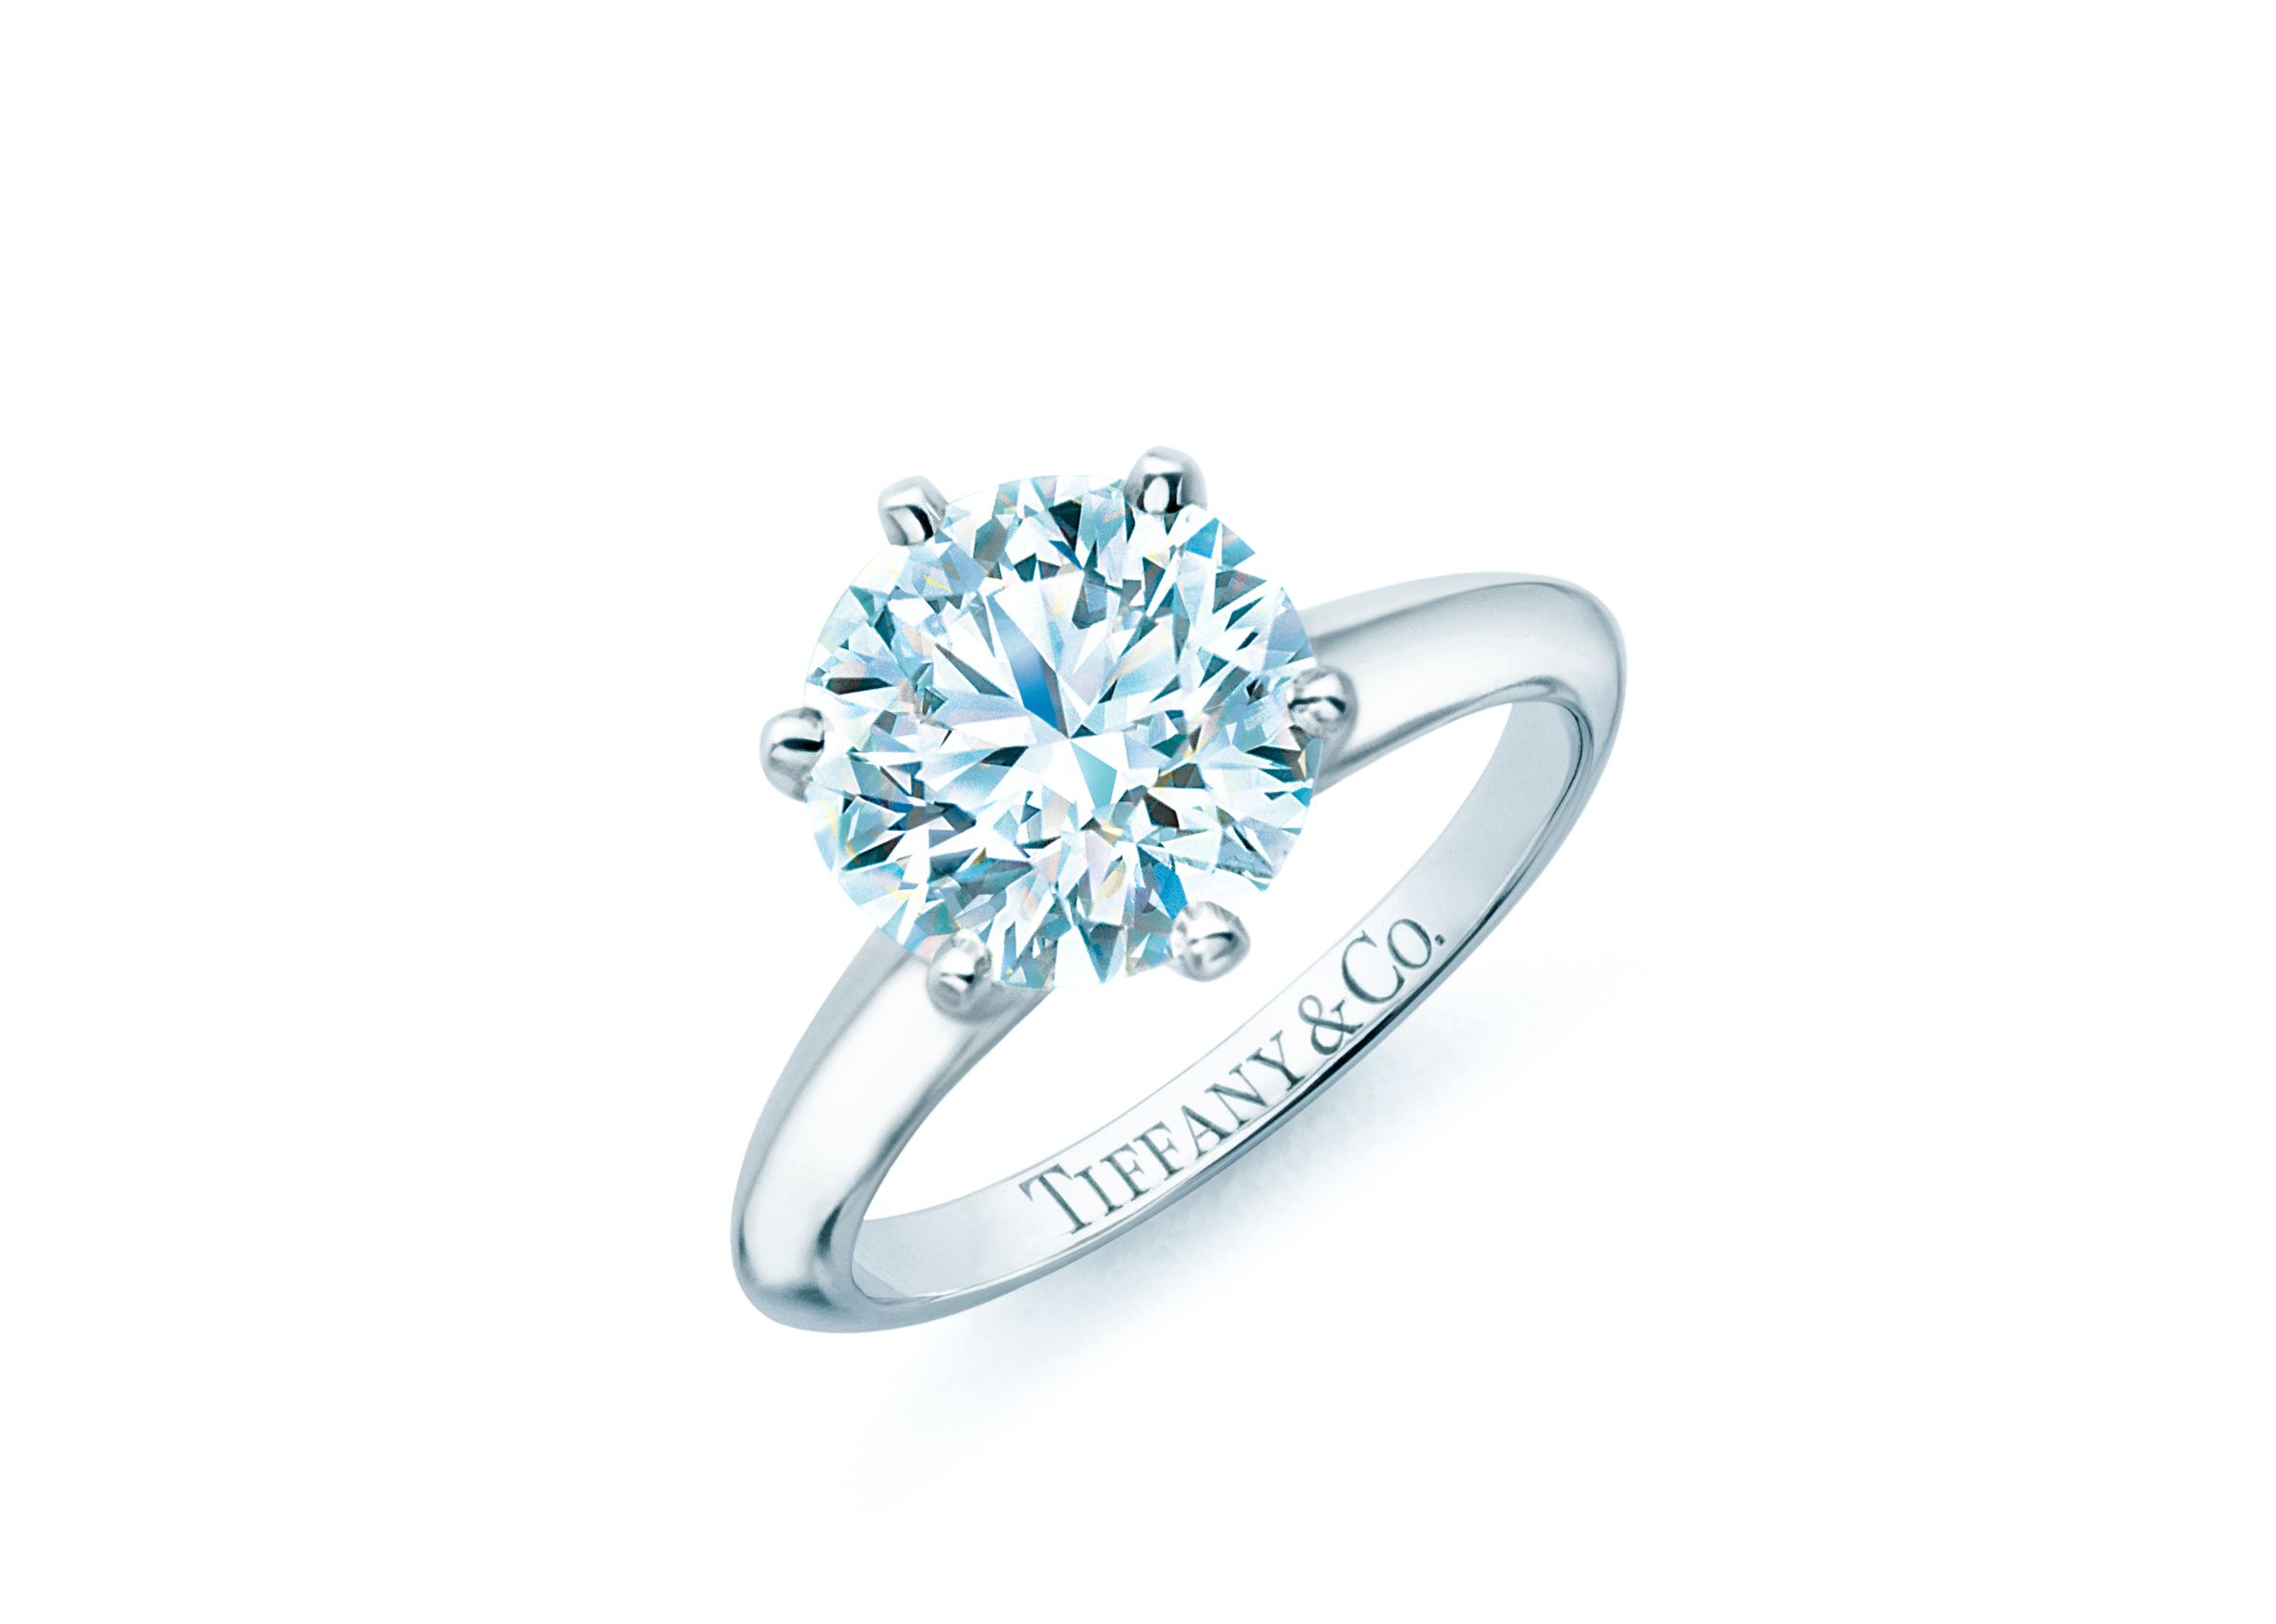 carat ring diamond co products rings main us glampot pic tiffany